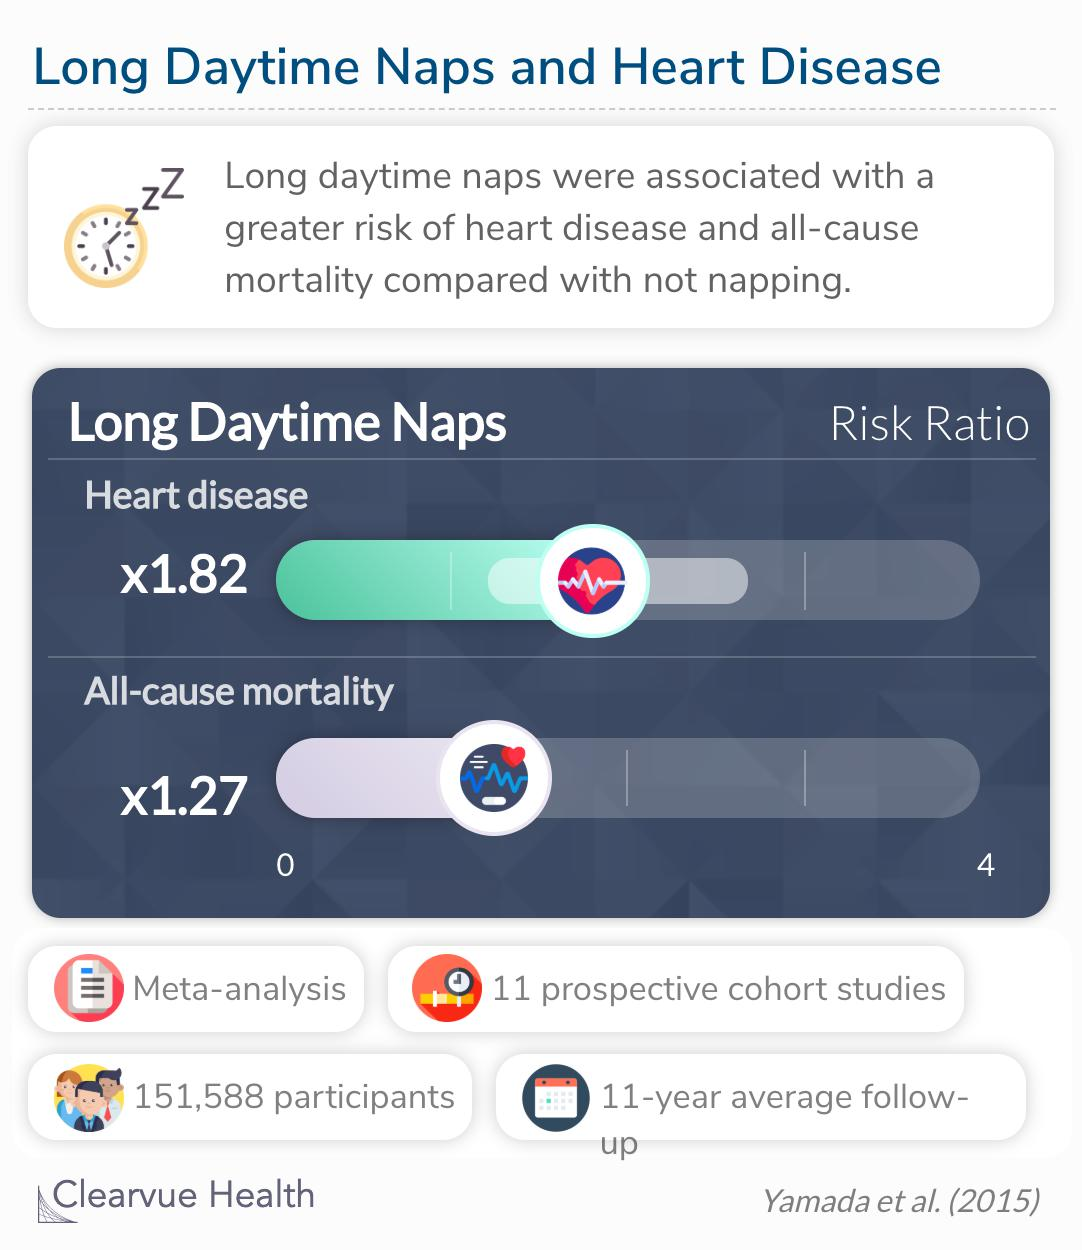 Long daytime naps were associated with higher risk of heart disease and all cause mortality